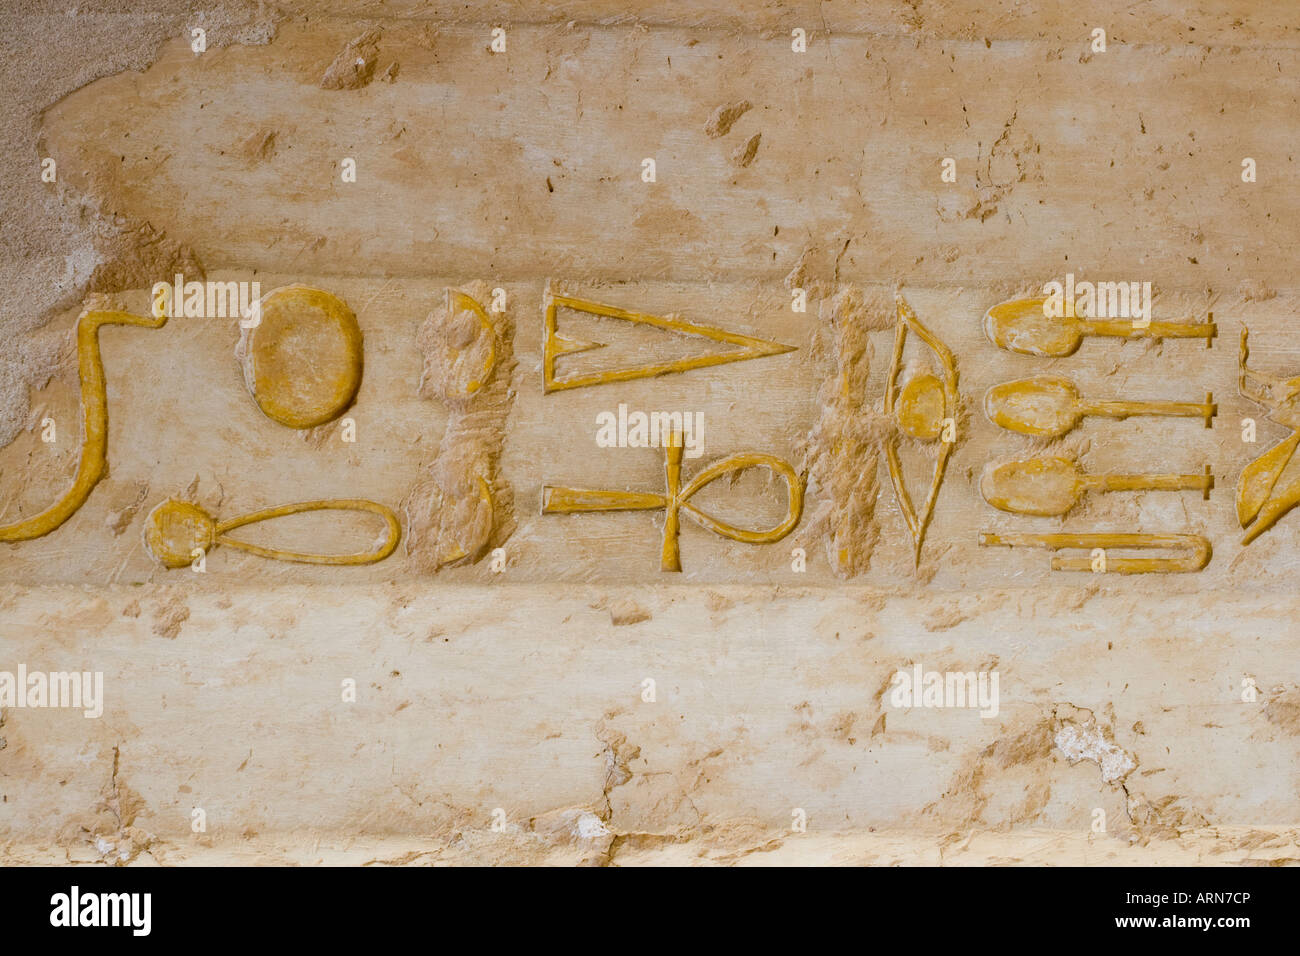 Hieroglyphs on the walls of the central court Temple of Hatshepsut West Bank Luxor Nile Valley Egypt - Stock Image